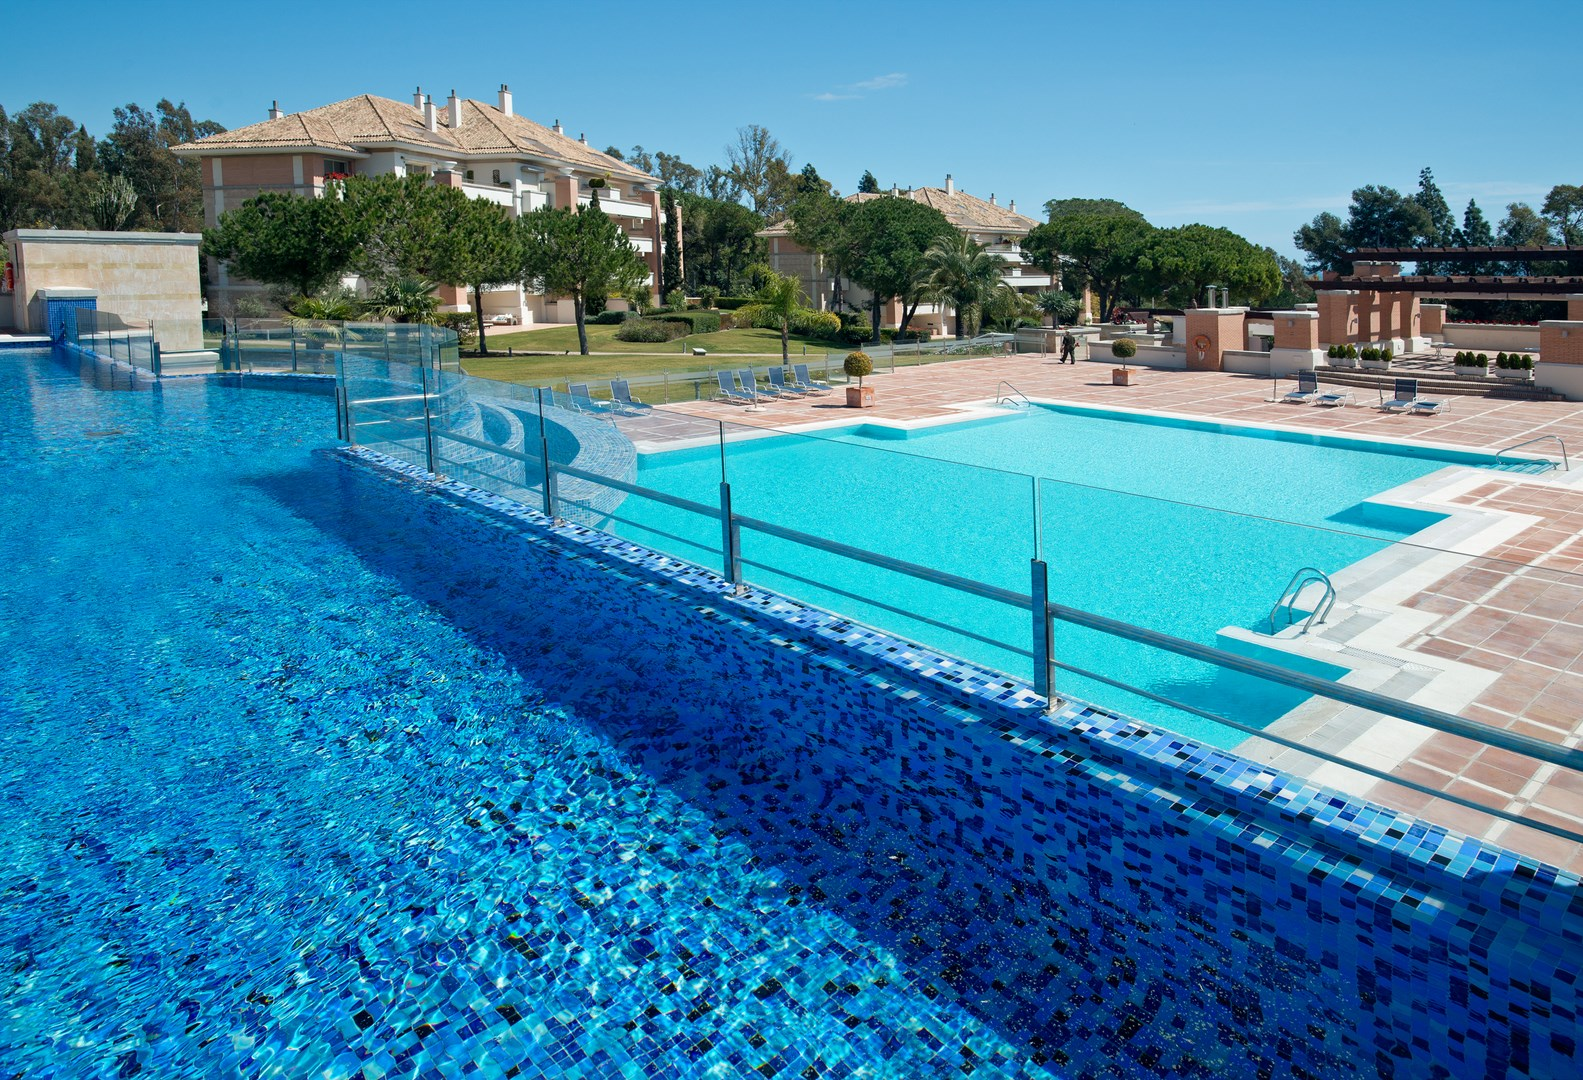 La trinidad marbella golden mile - Swimming pool area ...